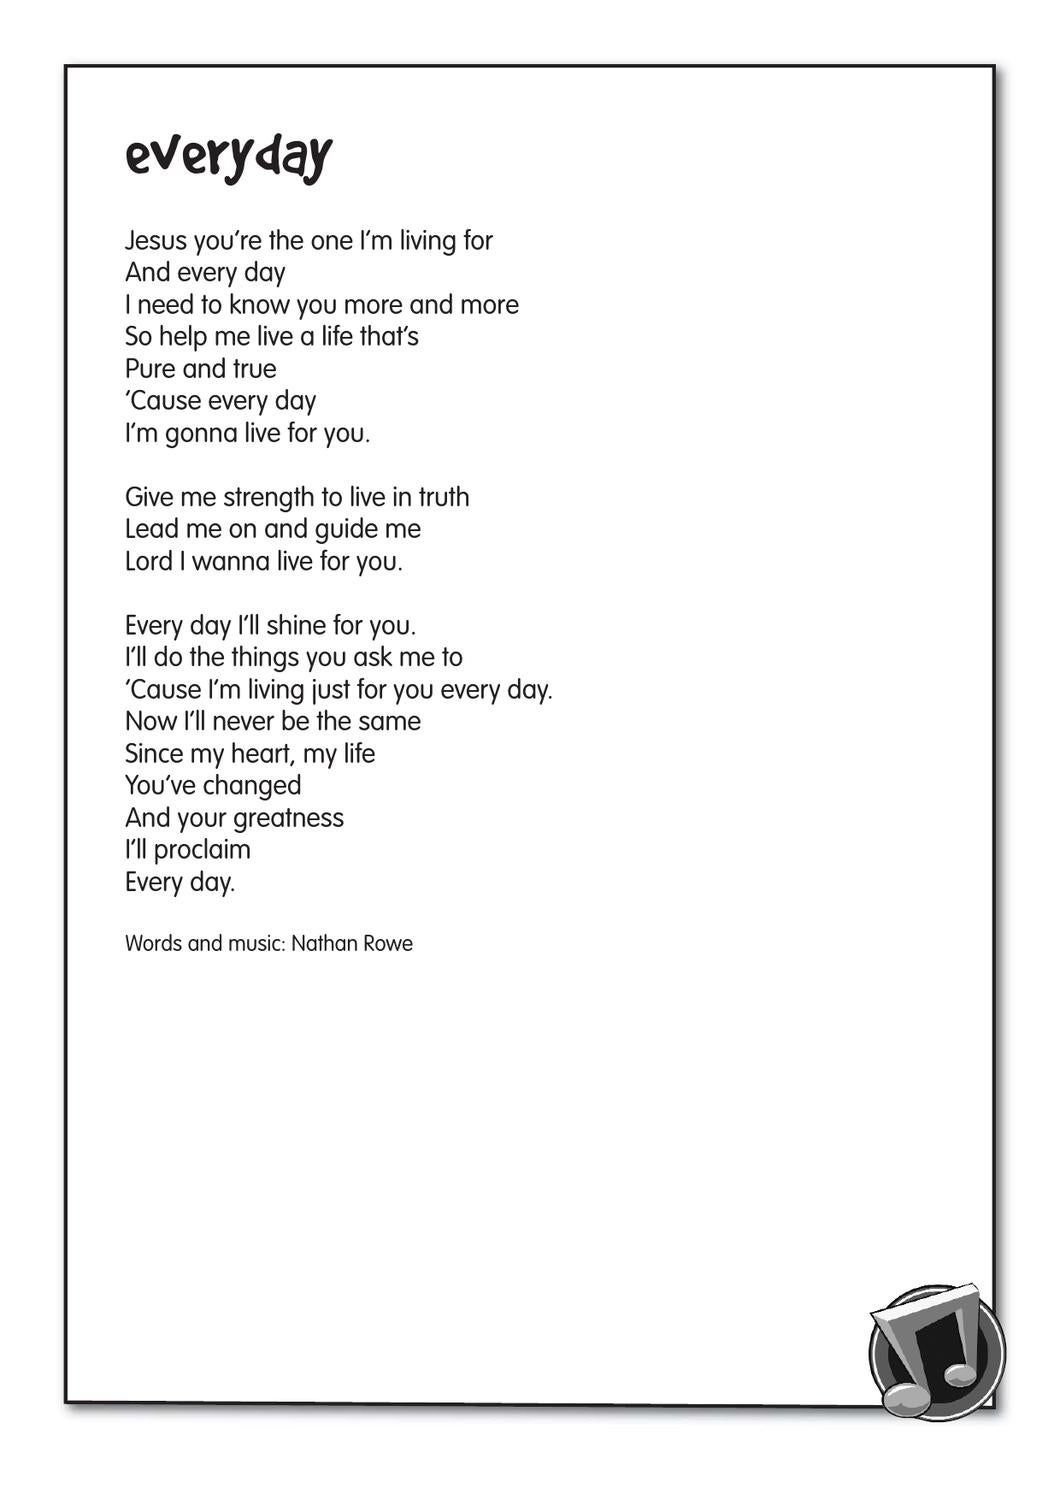 Everyday lyrics by The Salvation Army UK Territory with the Republic